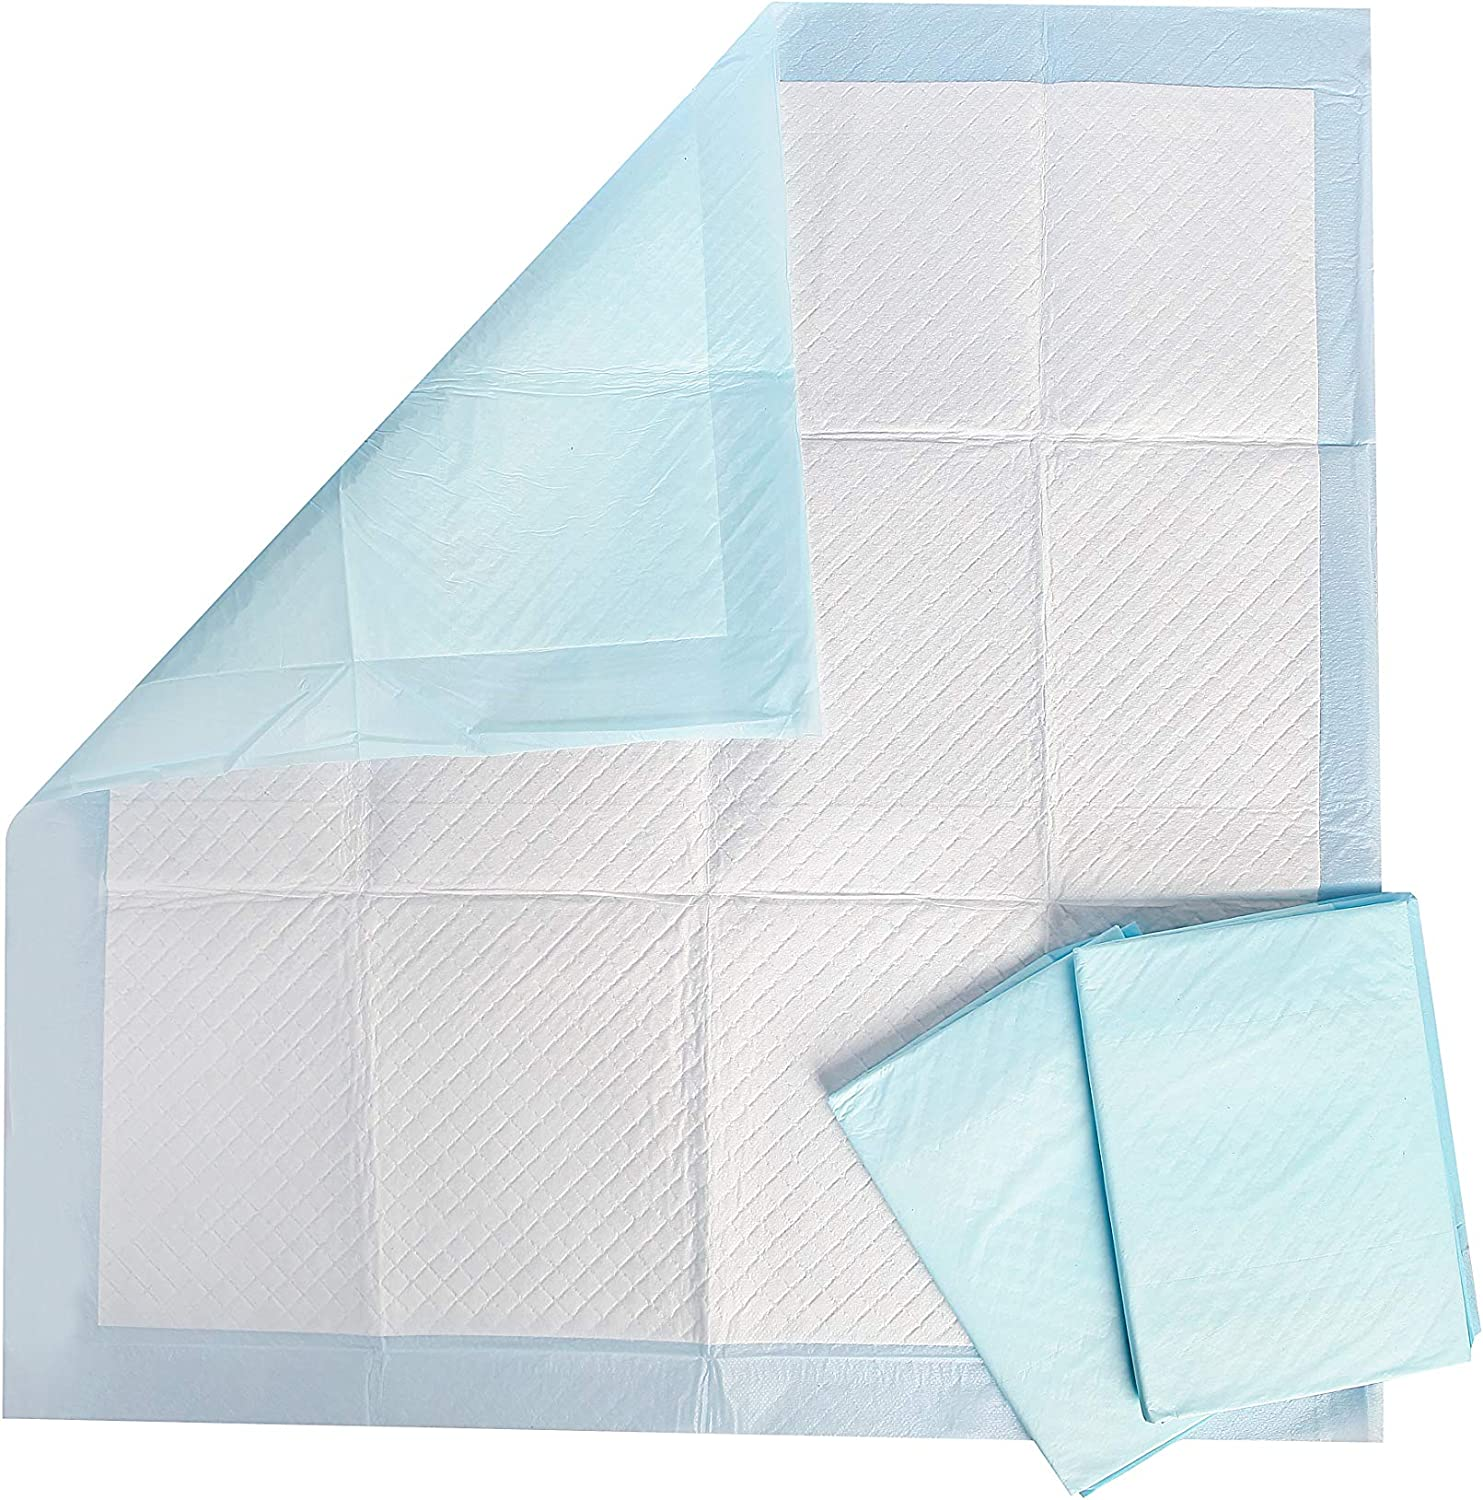 All-Absorb  A01 Training Pads 22-inch By 23-inch,Pack of 100